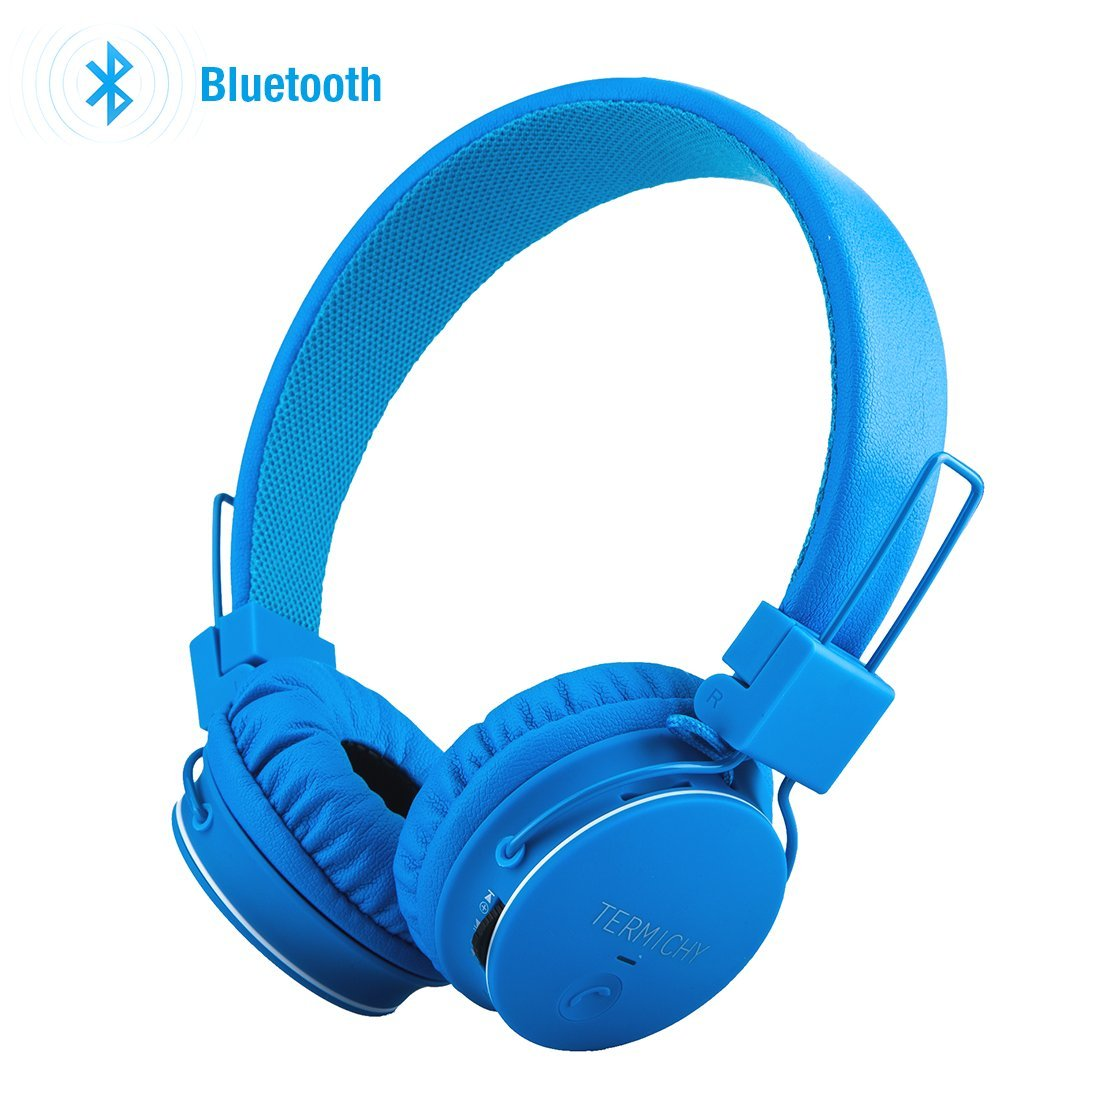 Kids Bluetooth Headphones Foldable Volume Limiting Wireless/Wired Stereo On Ear HD Headset with SD Card FM Radio In-line Volume Control Microphone for Children Adults (Blue) by Sodee